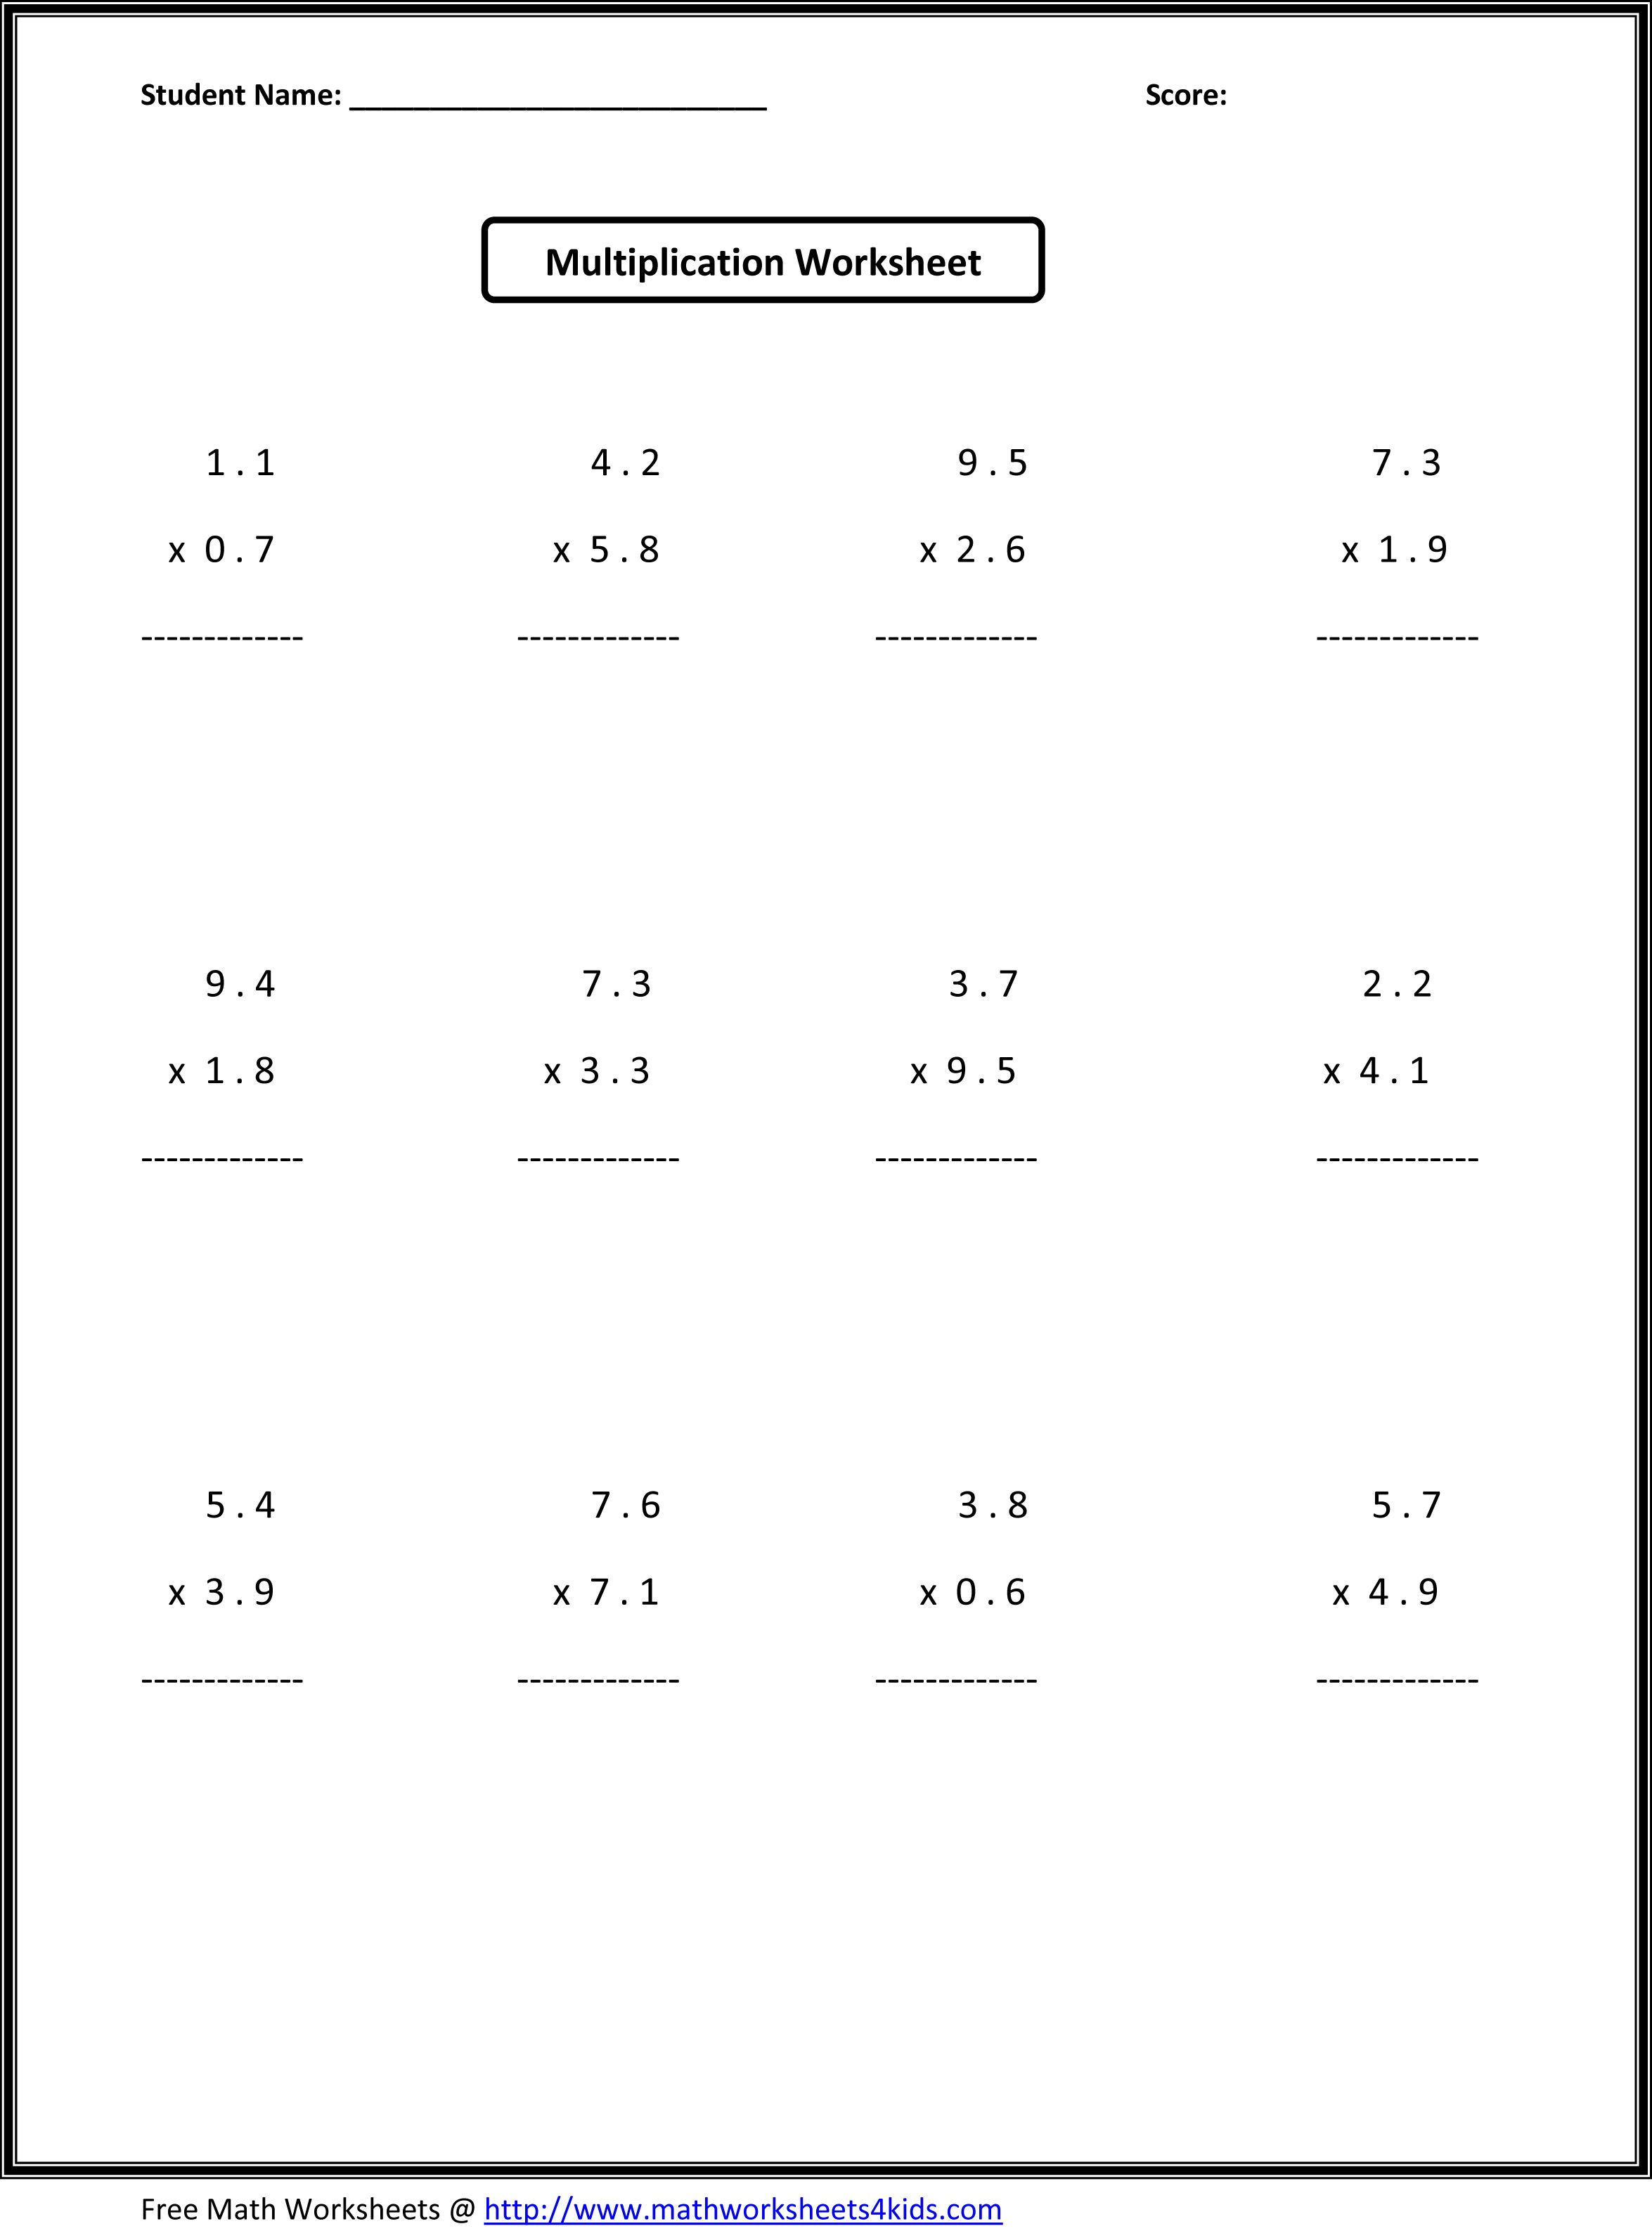 Worksheets 6th Grade Math Worksheets Free math decimals worksheets riddles 4th 5th 6th 7th grade sixth have ratio multiplying and dividing fractions algebraic expressions equations inequalities geom